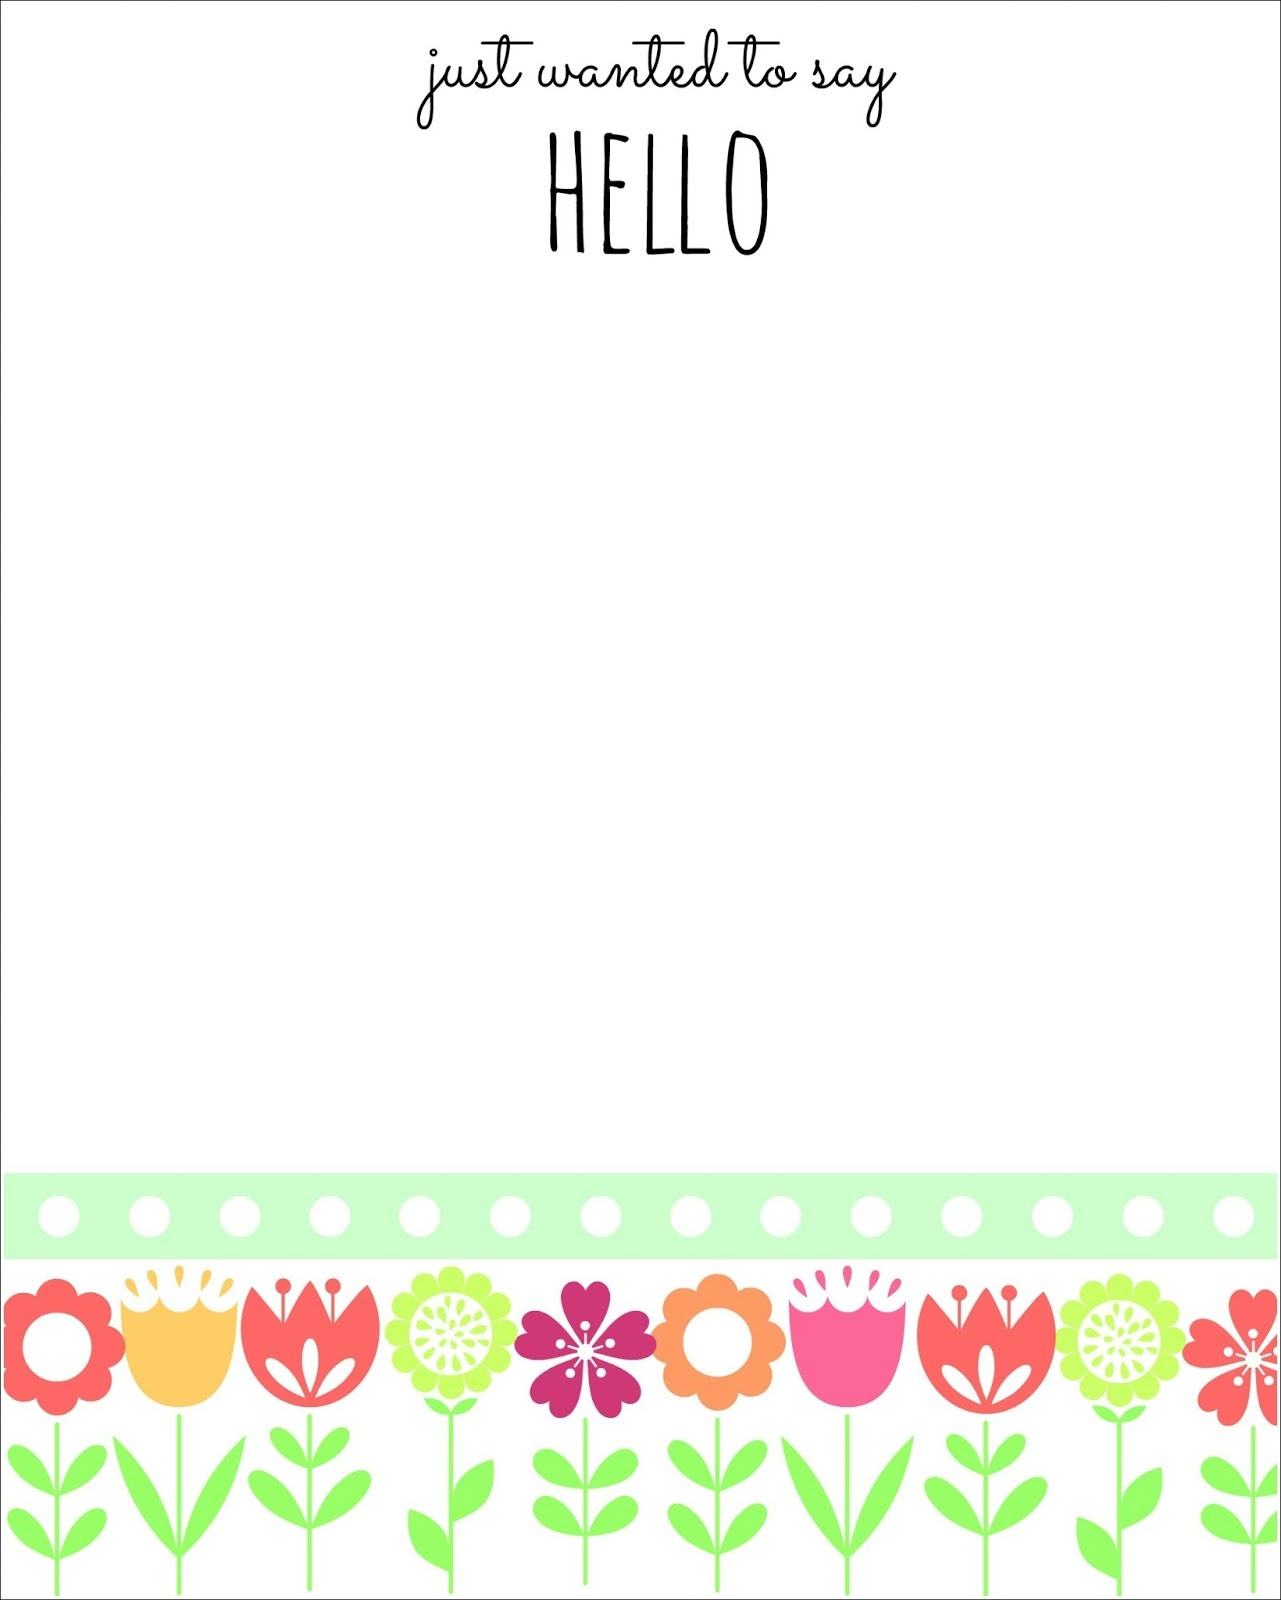 Free Printables For Spring And Some Stationary Too! - Mom 4 Real - Free Printable Spring Stationery